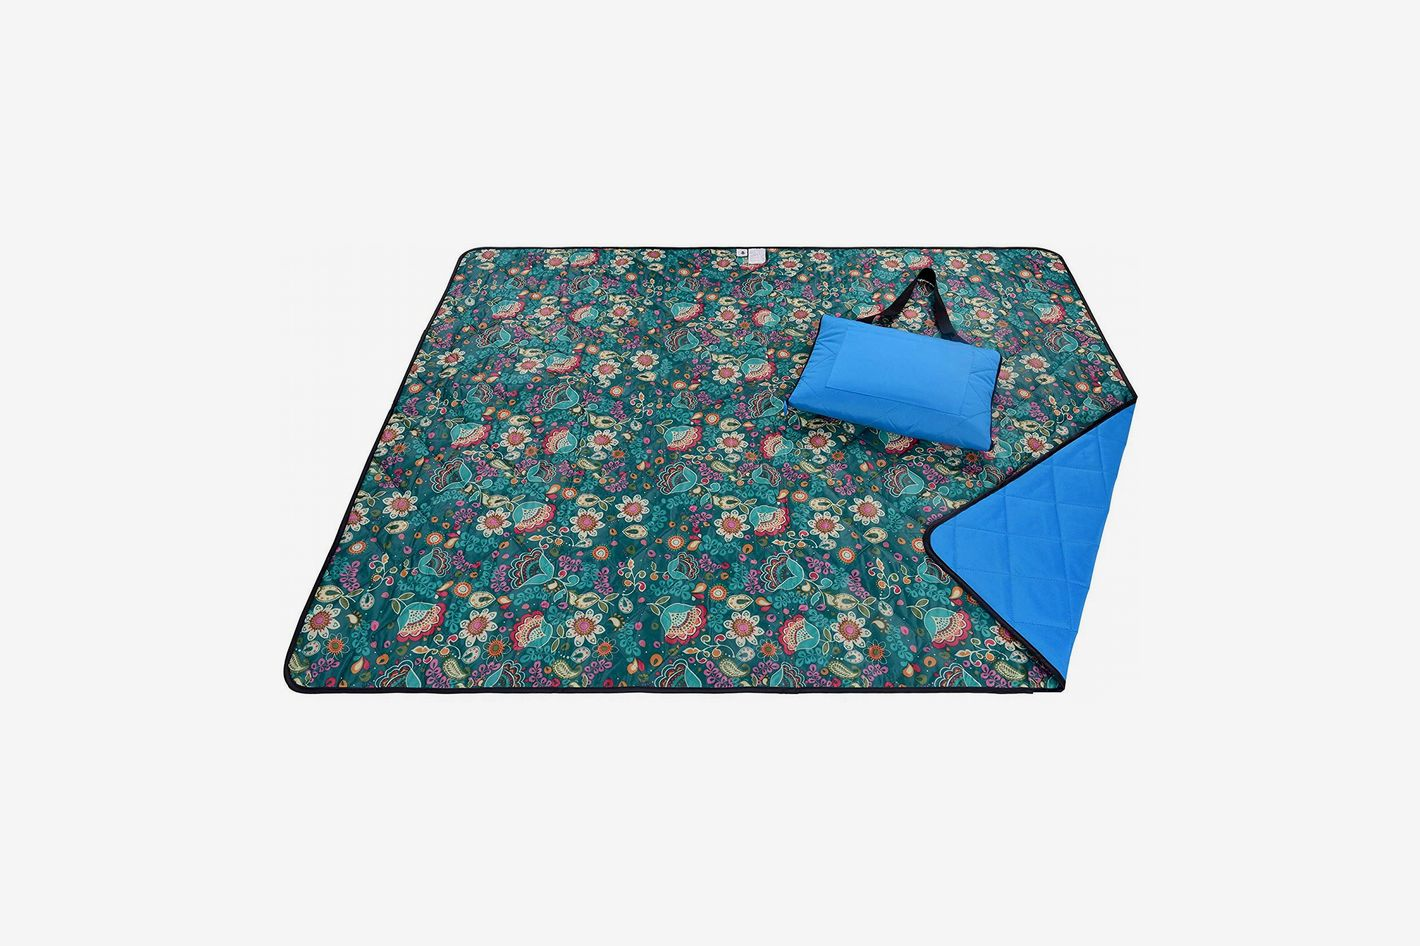 Roebury Beach Blanket Sand Proof & Outdoor Picnic Blanket